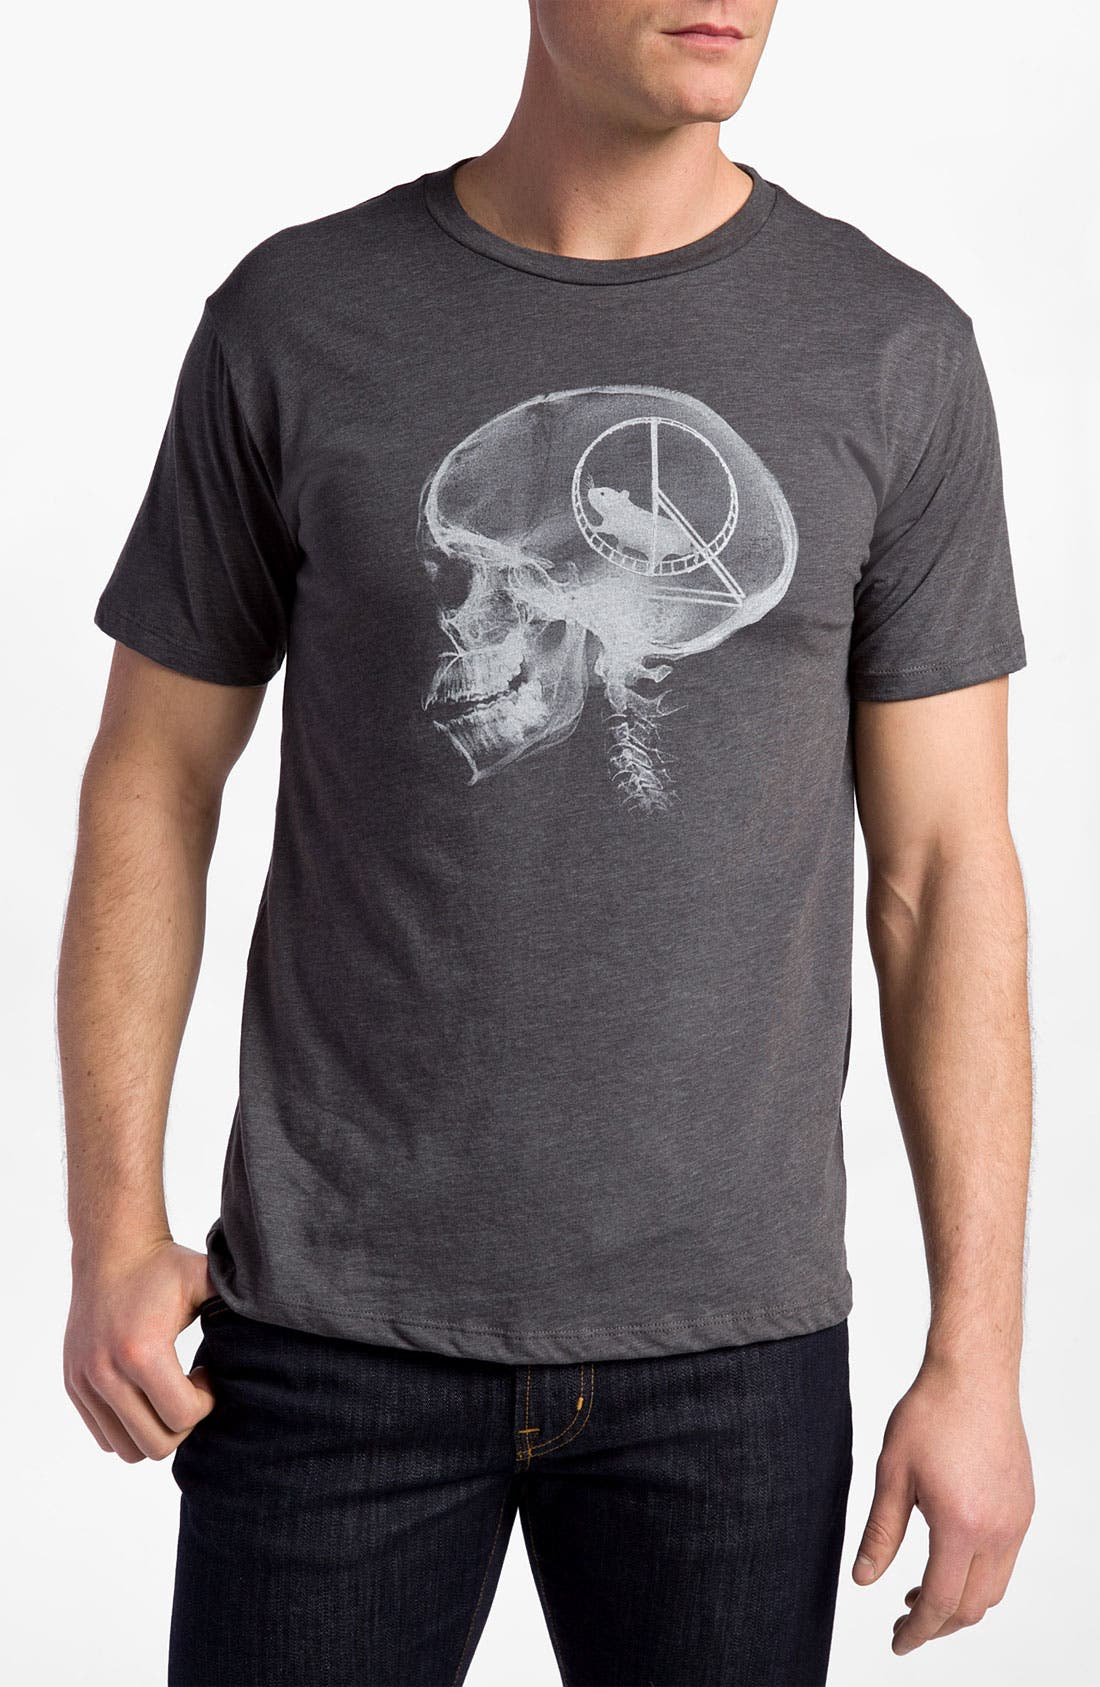 Alternate Image 1 Selected - Headline Shirts 'Hamster Head Scan' T-Shirt